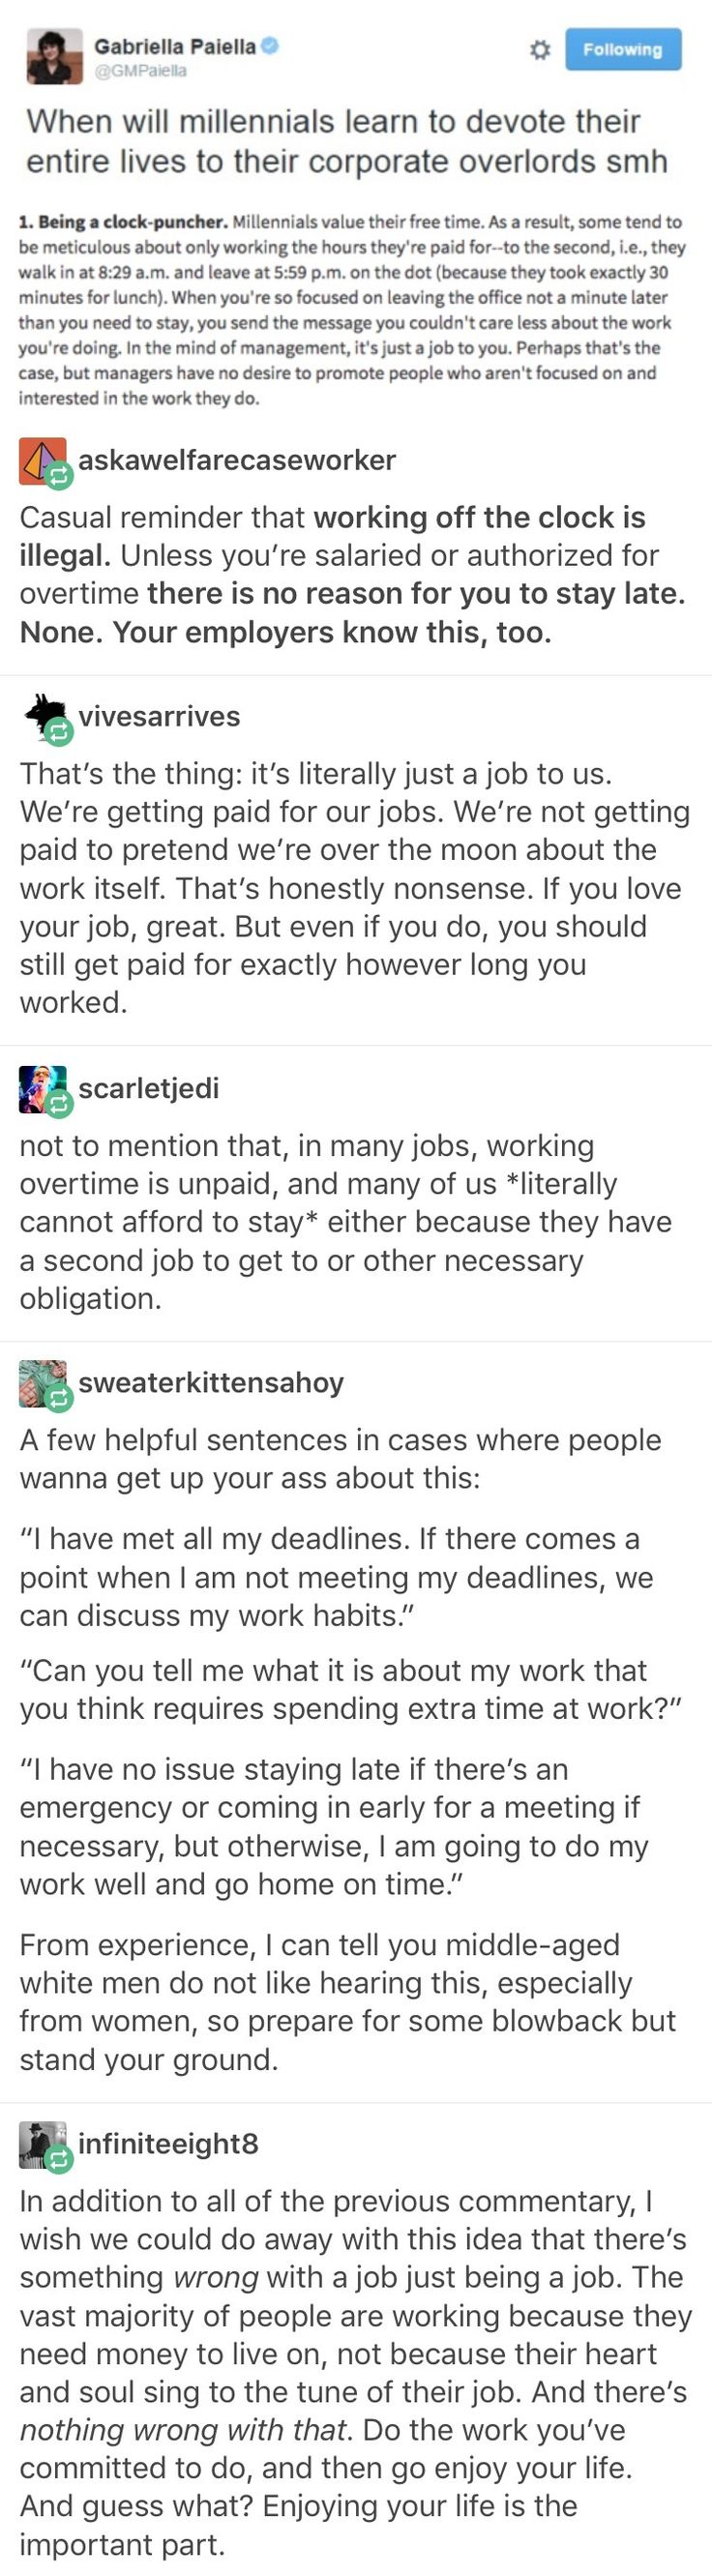 Yeah seriously. Why would you even stay later than needed? I mean, if you're not finished, or someone needs your help, obviously you'd stay, but if that isn't the case, why would you stay longer than required?